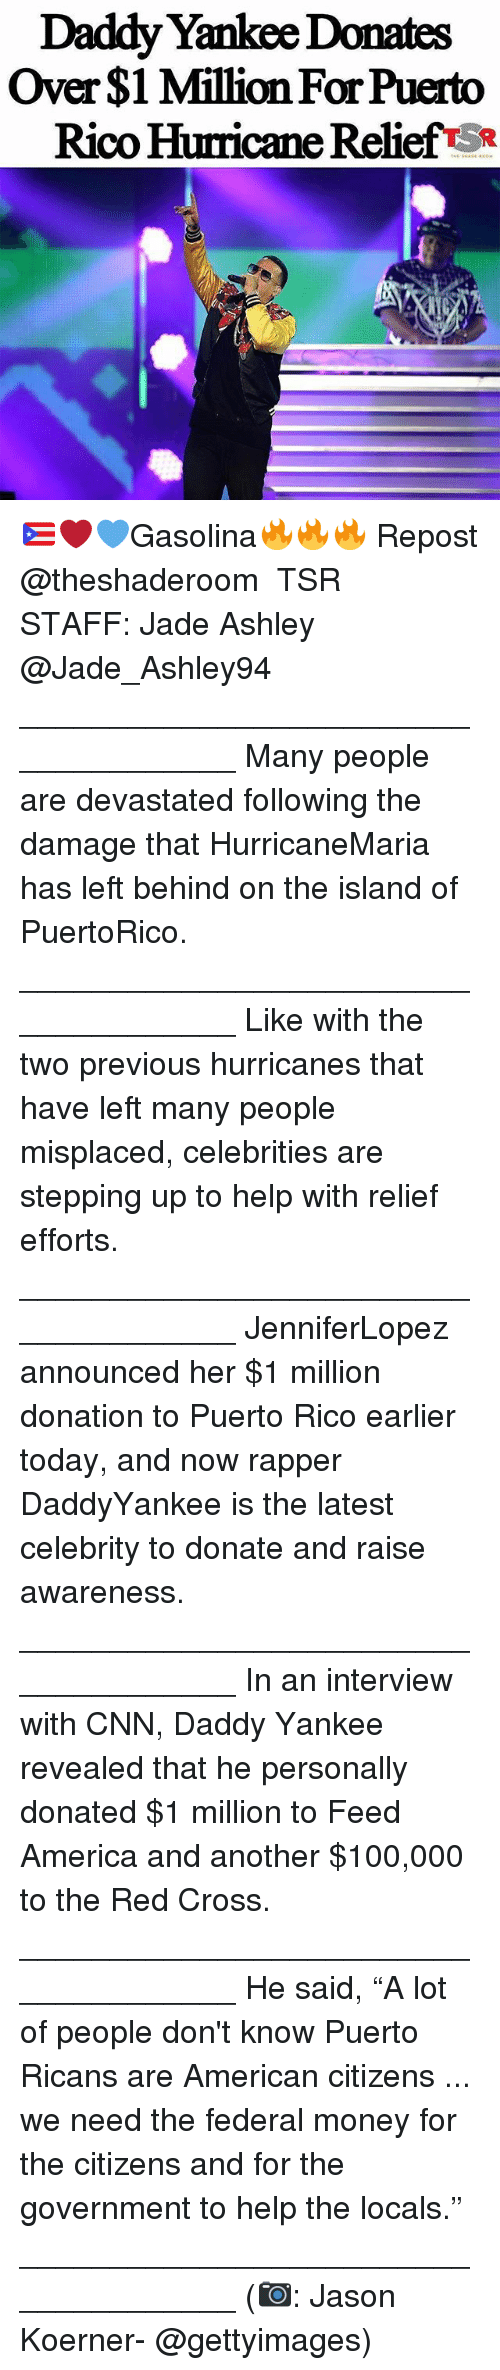 """America, Anaconda, and cnn.com: Daddy Yankee Donates  Over $1 Million For Puerto  Rico Hurricane Relief SR 🇵🇷❤💙Gasolina🔥🔥🔥 Repost @theshaderoom ・・・ TSR STAFF: Jade Ashley @Jade_Ashley94 _____________________________________ Many people are devastated following the damage that HurricaneMaria has left behind on the island of PuertoRico. _____________________________________ Like with the two previous hurricanes that have left many people misplaced, celebrities are stepping up to help with relief efforts. _____________________________________ JenniferLopez announced her $1 million donation to Puerto Rico earlier today, and now rapper DaddyYankee is the latest celebrity to donate and raise awareness. _____________________________________ In an interview with CNN, Daddy Yankee revealed that he personally donated $1 million to Feed America and another $100,000 to the Red Cross. _____________________________________ He said, """"A lot of people don't know Puerto Ricans are American citizens ... we need the federal money for the citizens and for the government to help the locals."""" _____________________________________ (📷: Jason Koerner- @gettyimages)"""